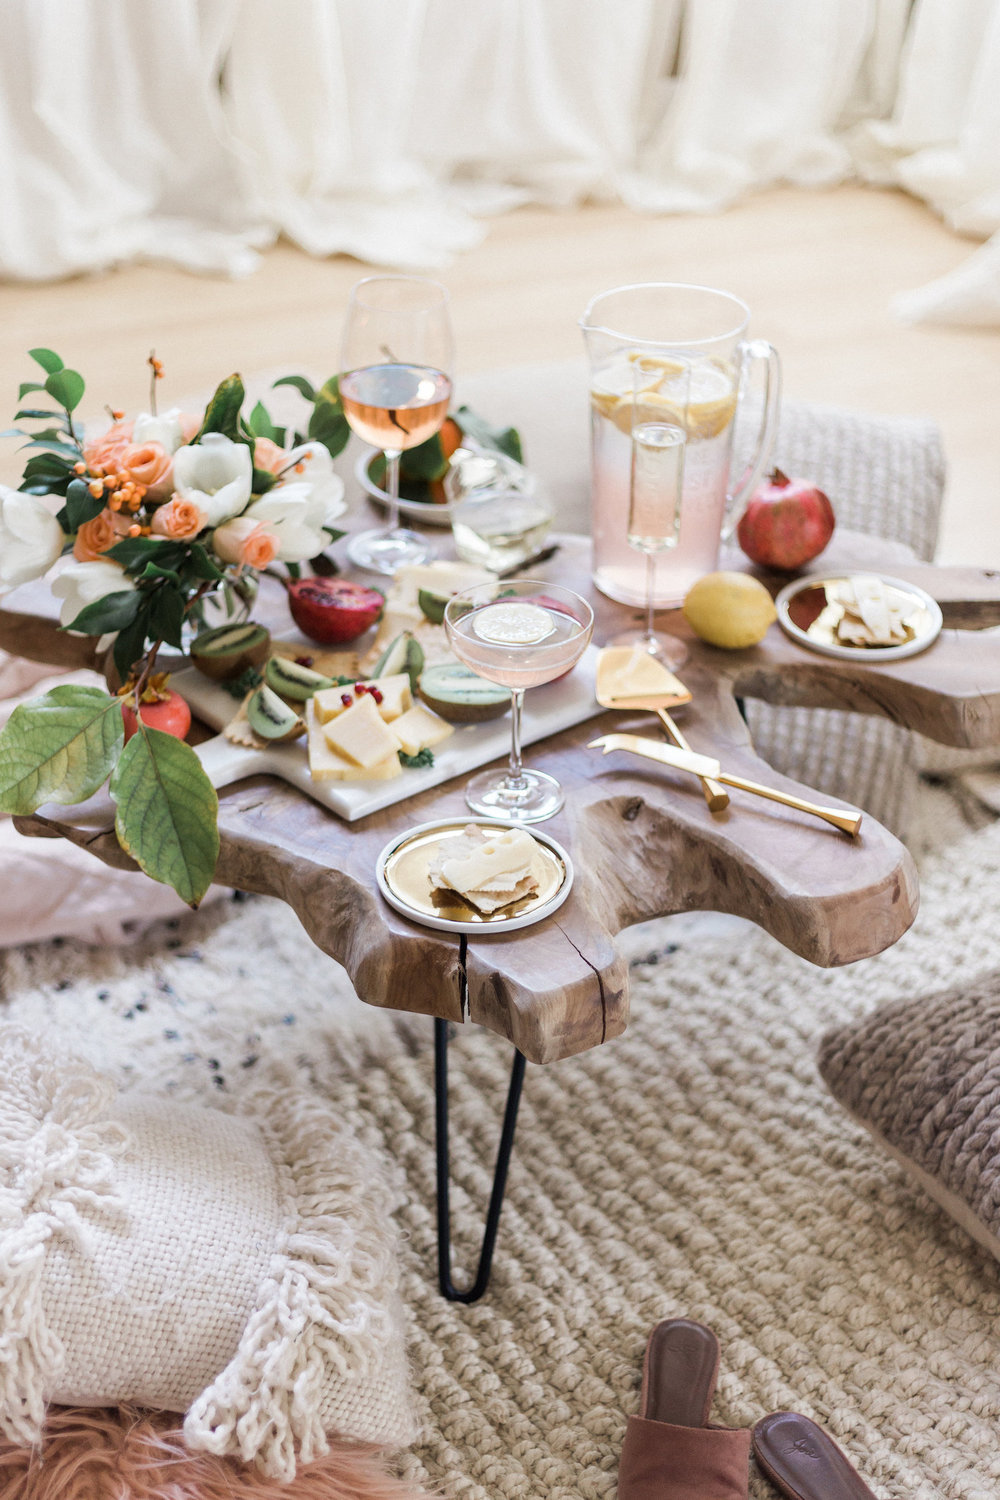 A simple living room picnic with friends | A Fabulous Fete